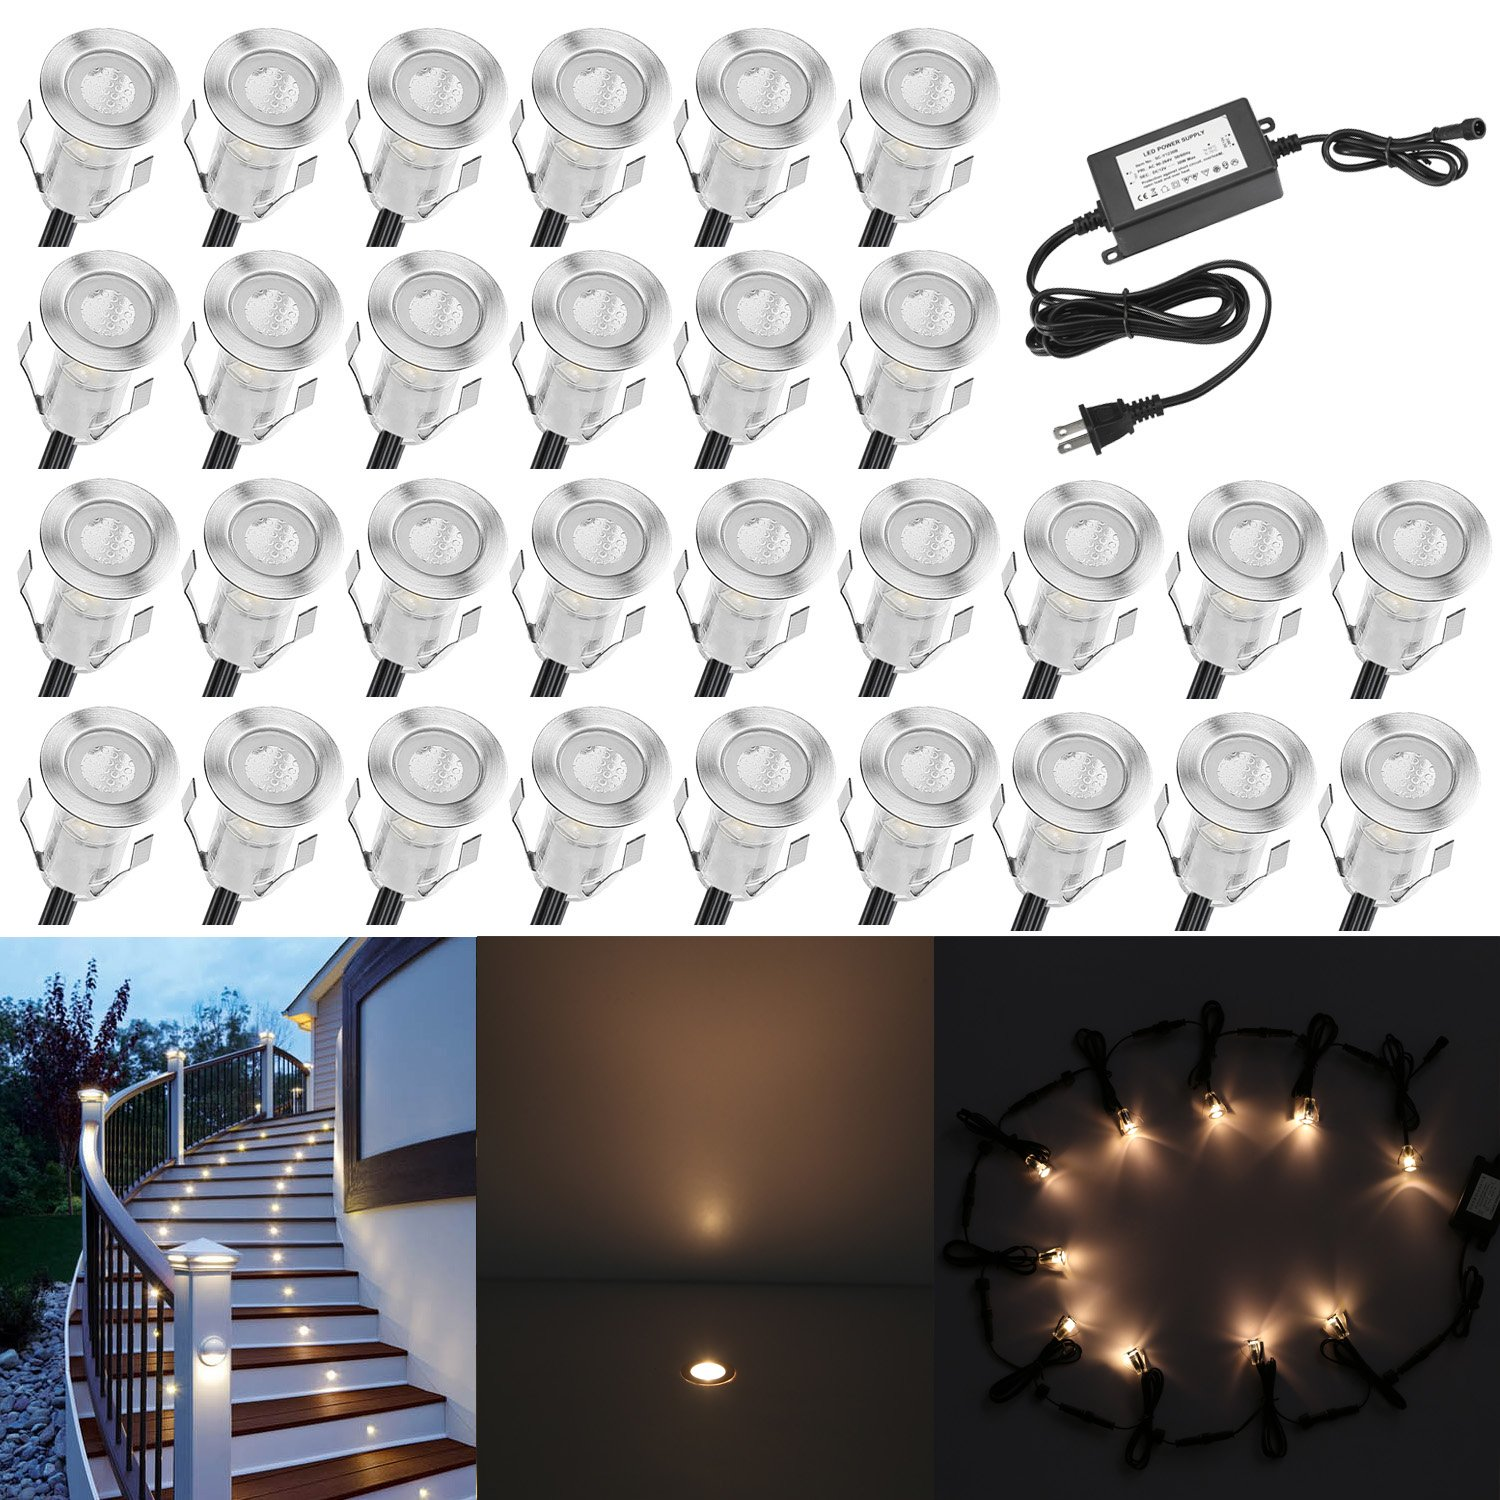 QACA 0.7'' Tiny Warm White LED Deck Light Kit, Stainless Steel Waterproof Recessed Wood Decking Stairs Garden Yard Patio Decor Lamp Low Voltage Outdoor LED Lighting, Pack of 30 by QACA